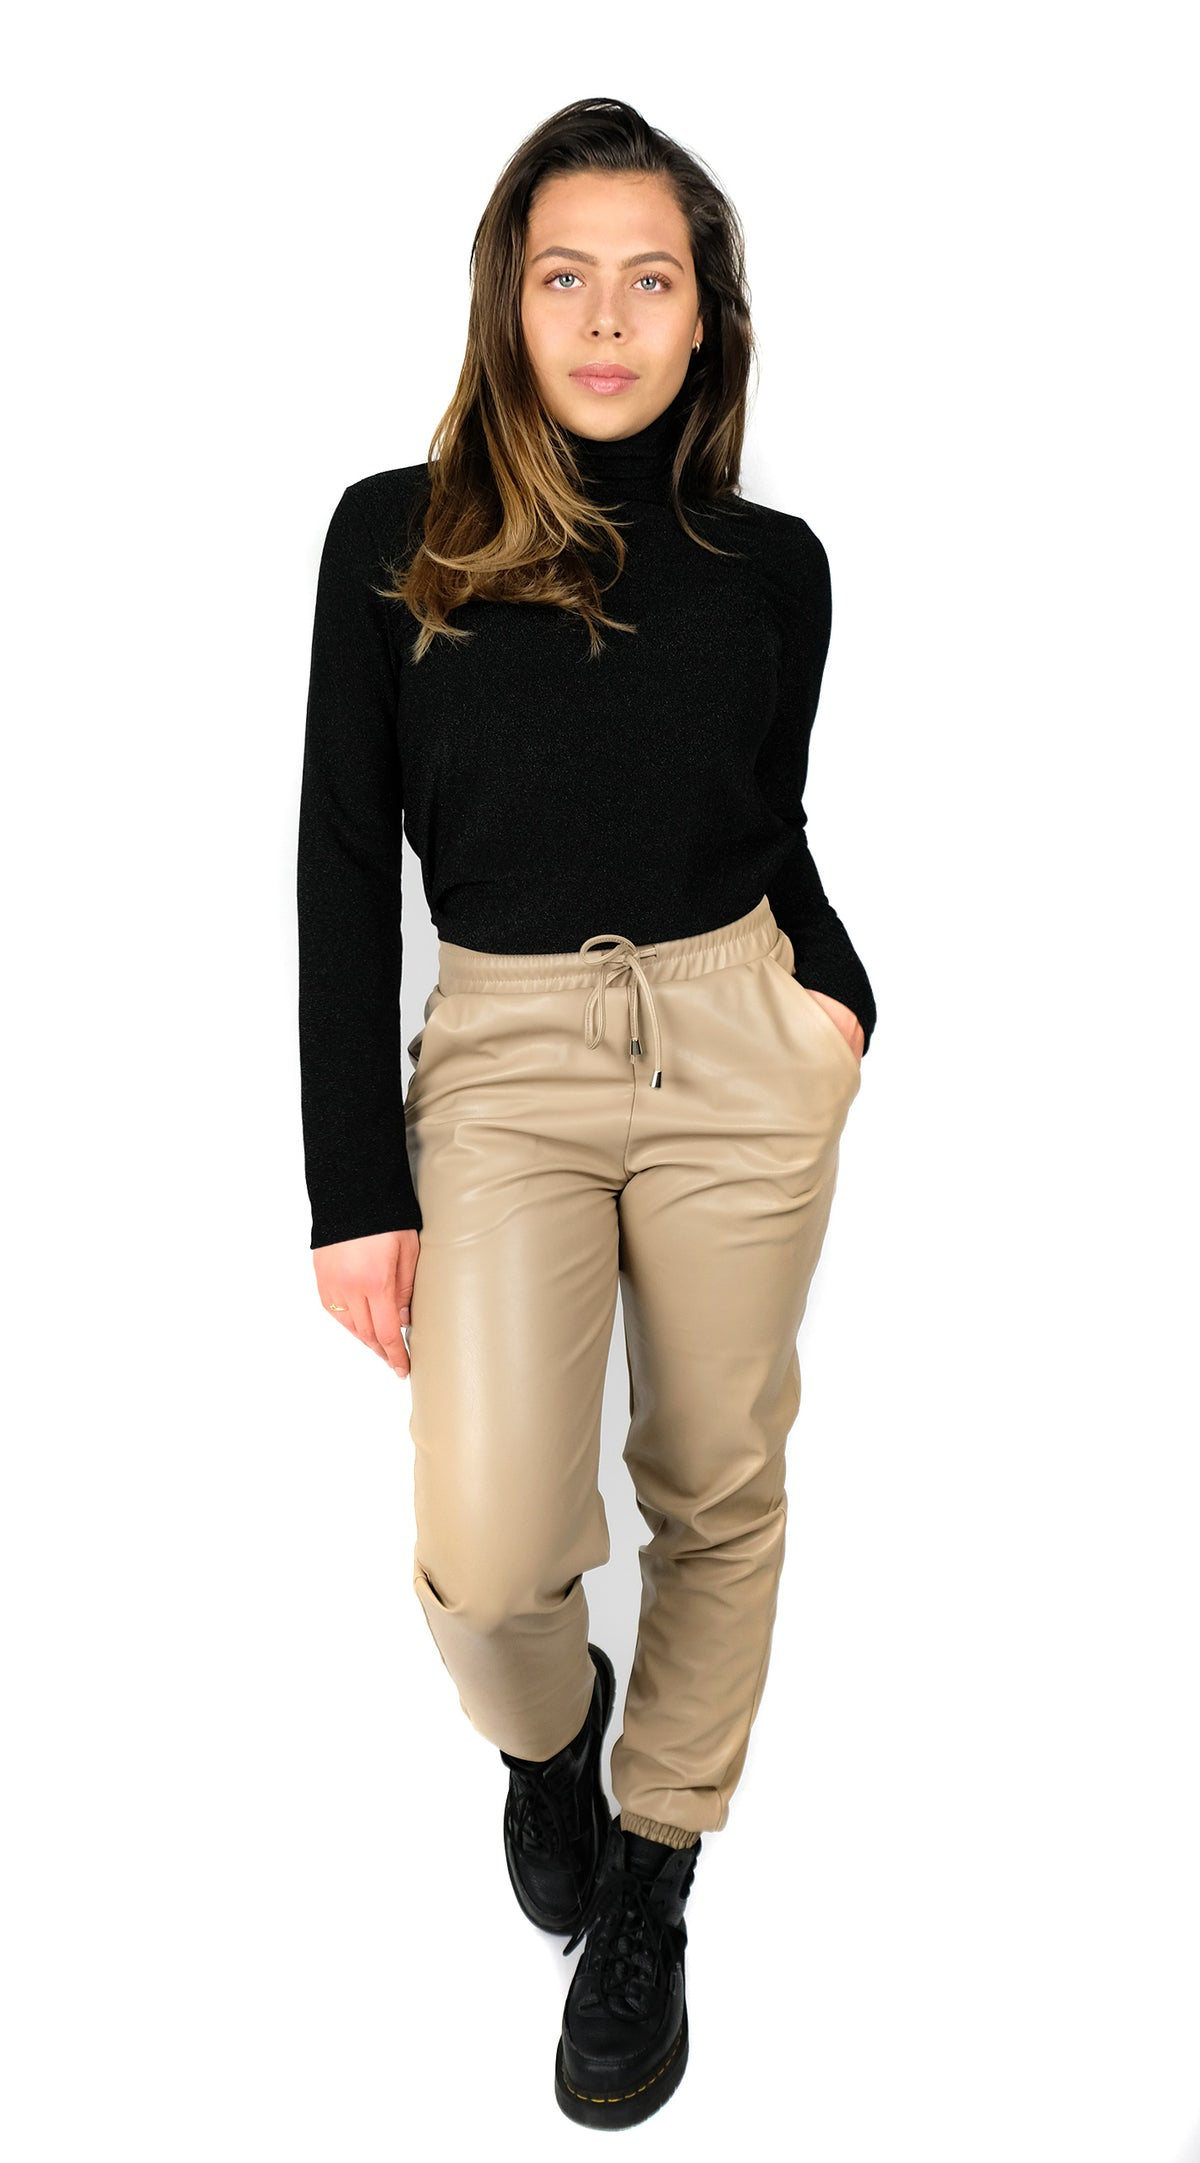 Faux Leather Jogging Pants Beige, BUYLAU, LA Sisters, Laura Ponticorvo